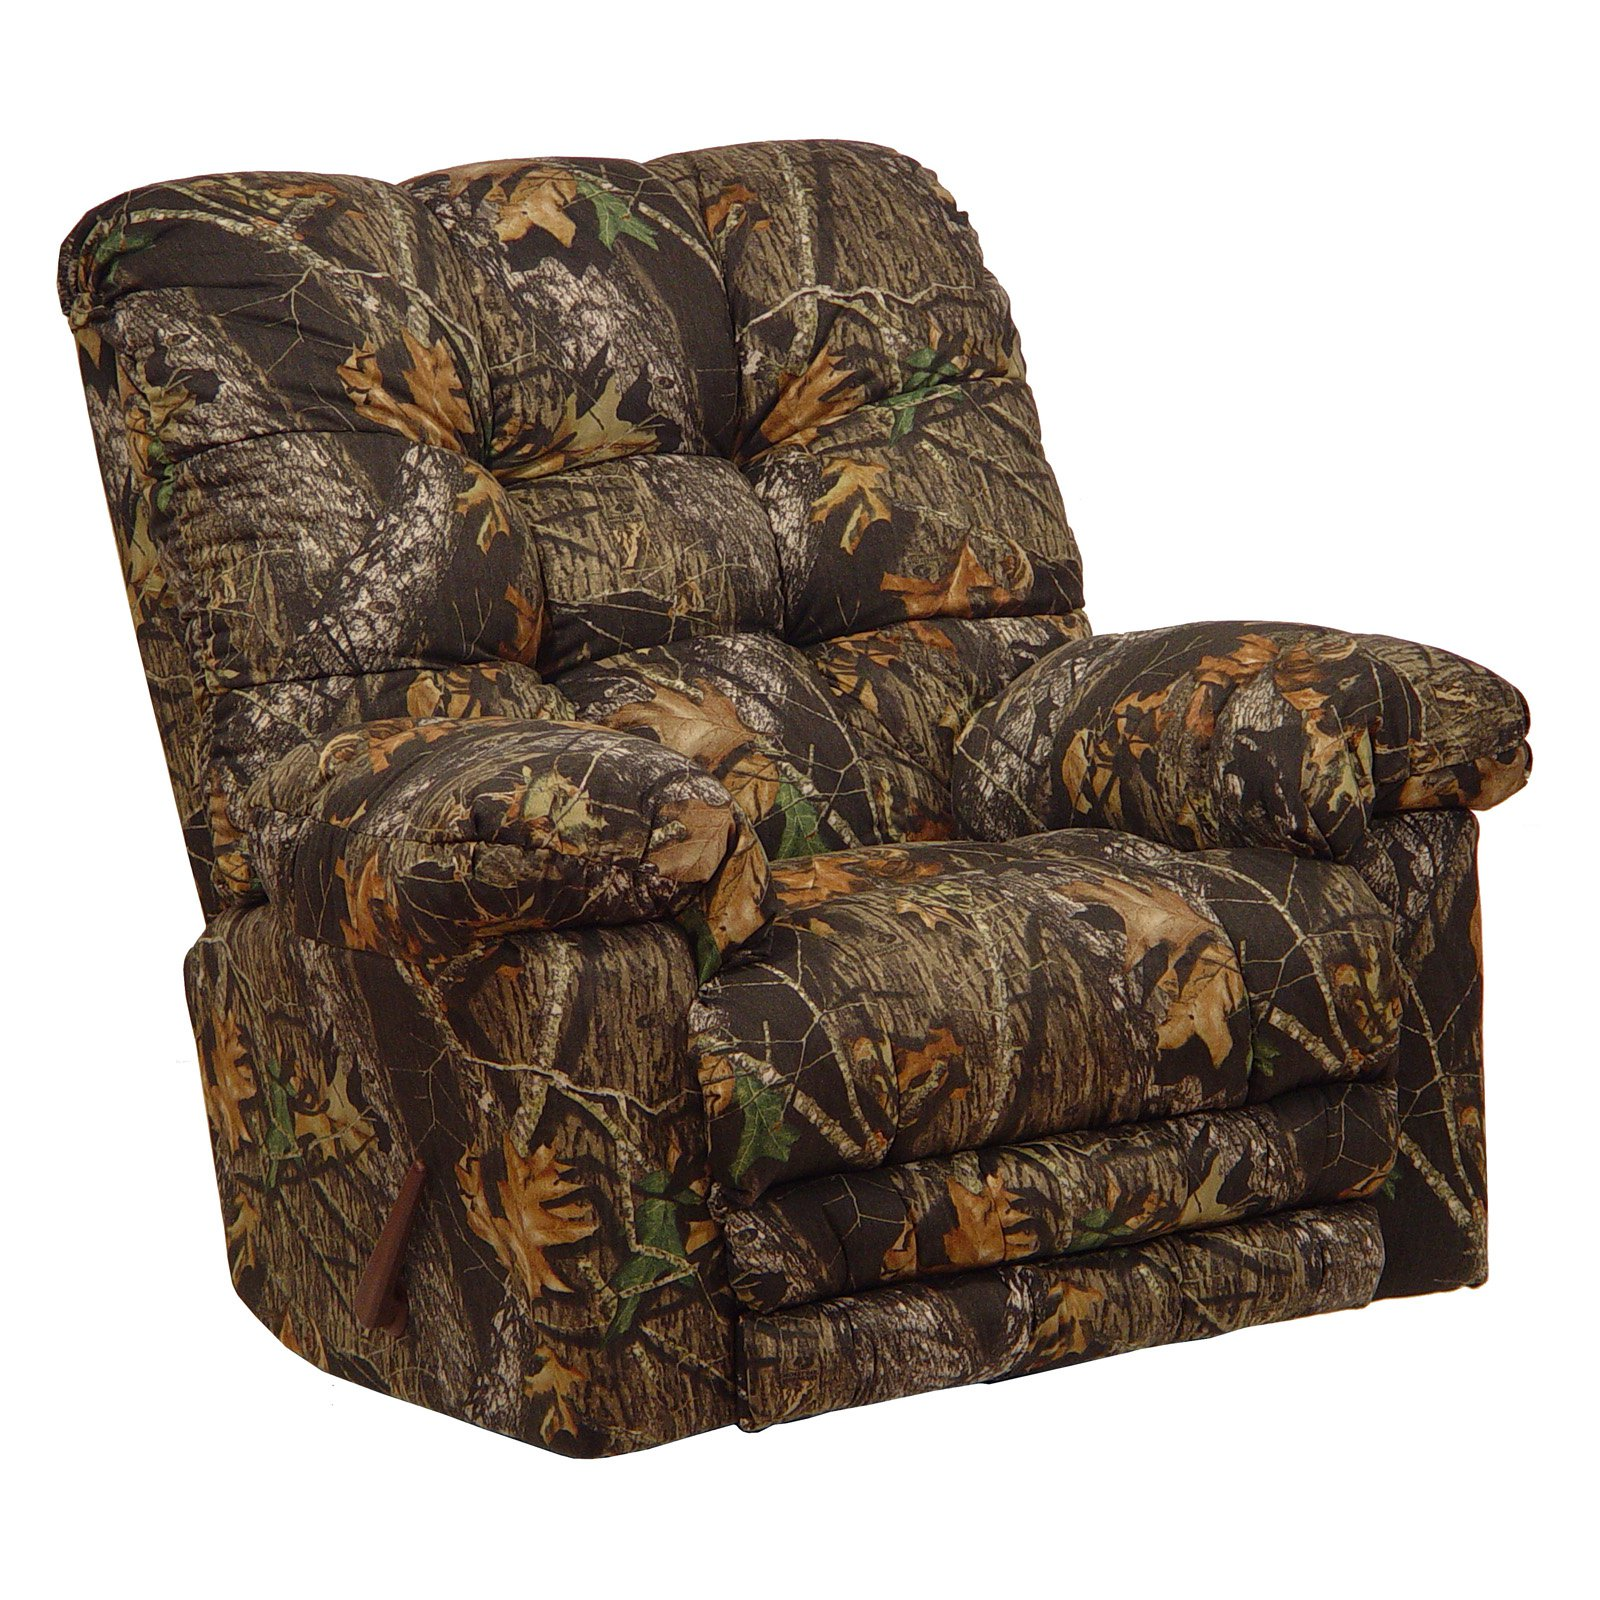 pink back brazil west recliner child true button furniture hayneedle camo master product cfm